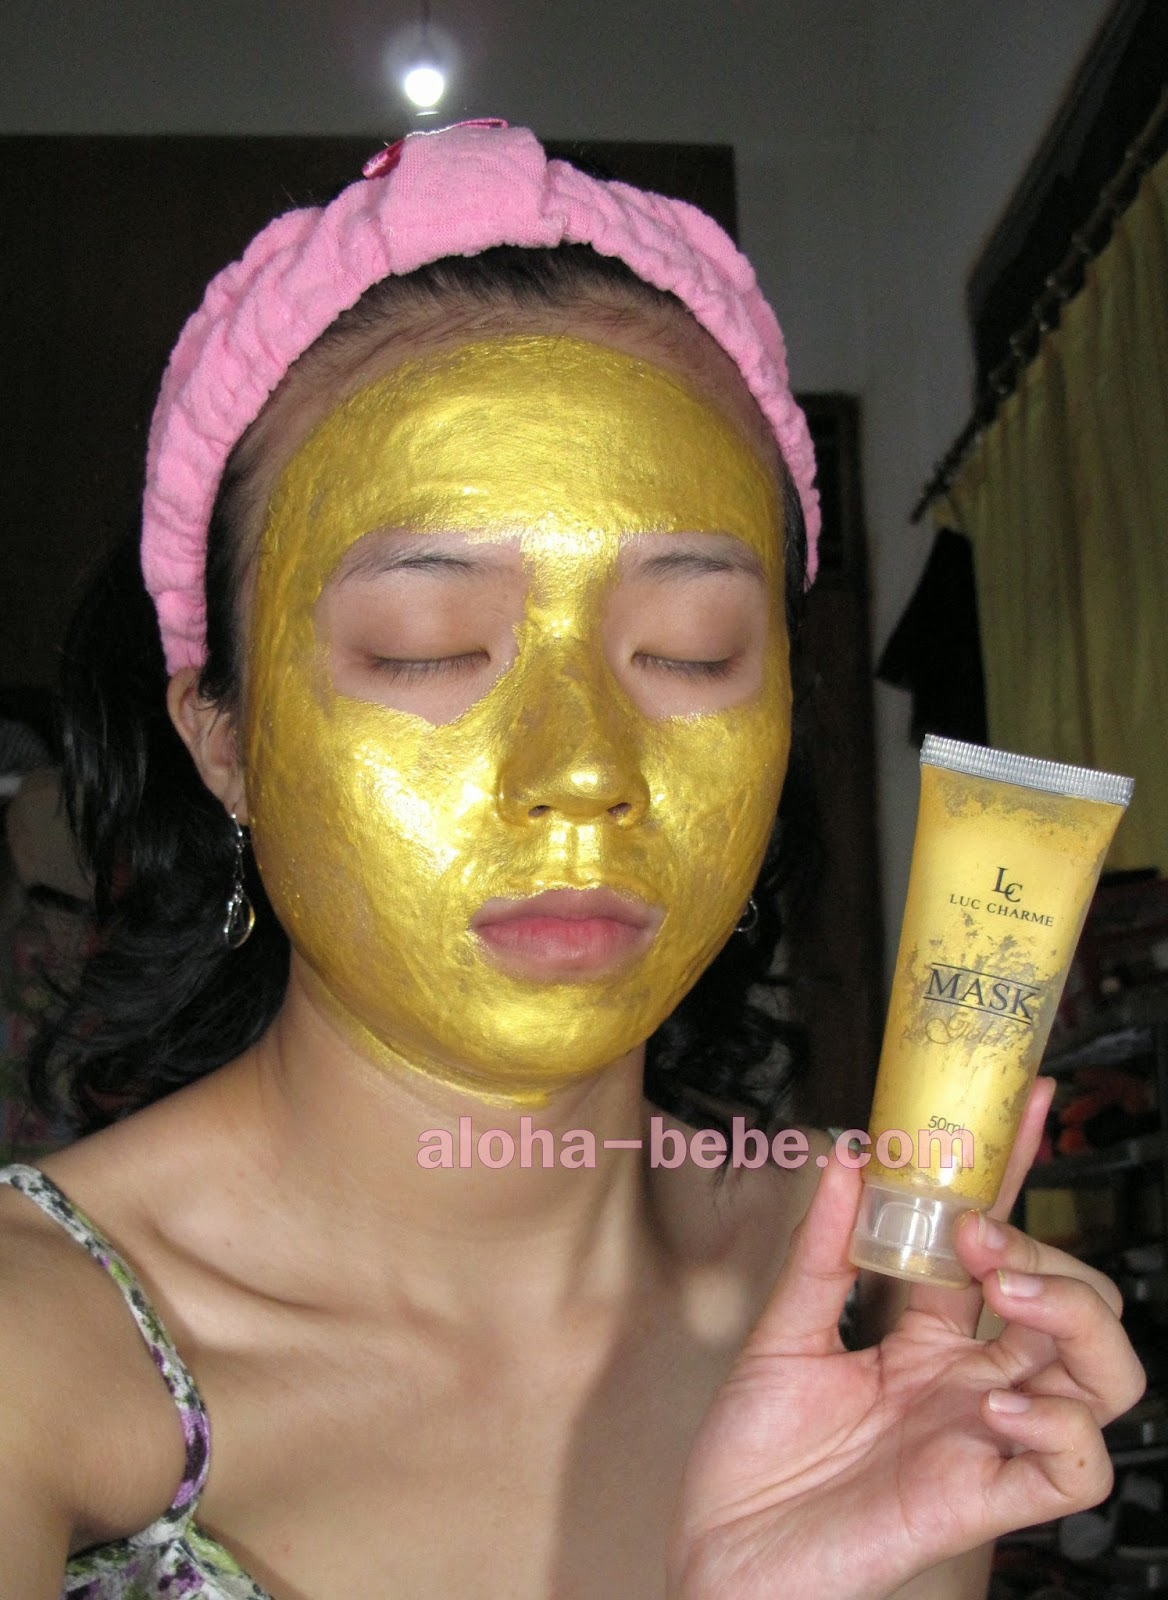 Review LUC Charme Gold Mask With Collagen